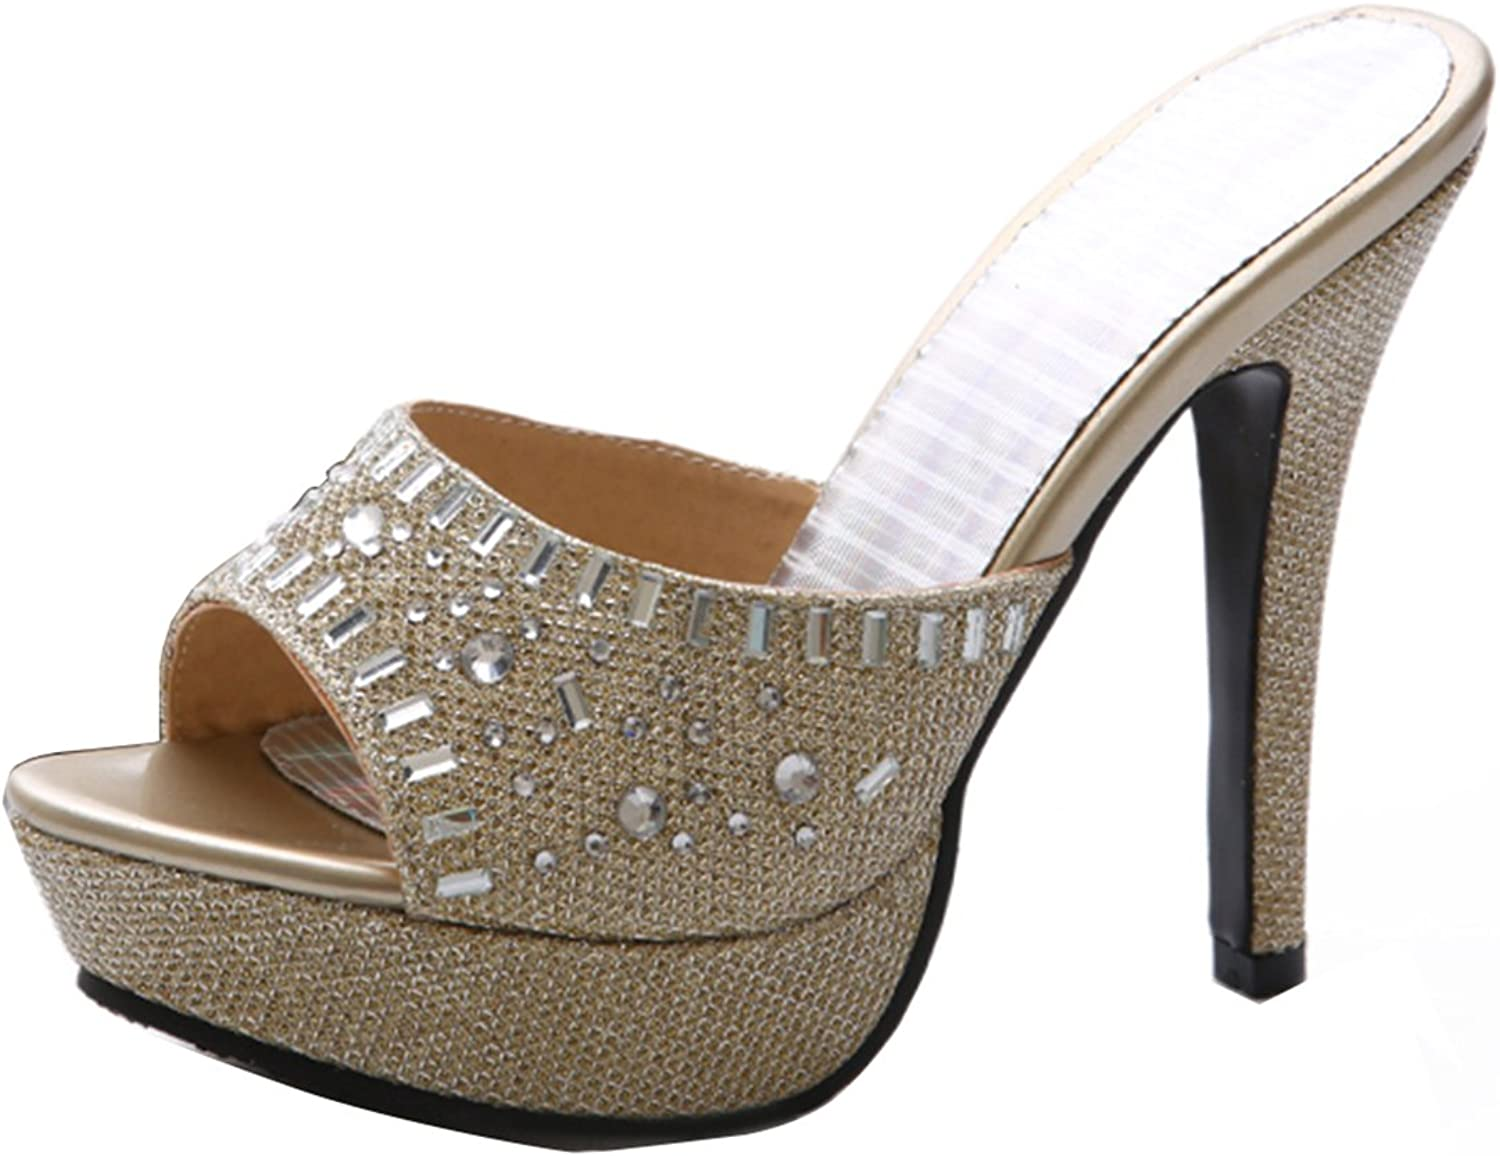 AIYOUMEI Women's Peep Toe shoes Glitter Platform Stiletto High Heels Sandals with Rhinestones